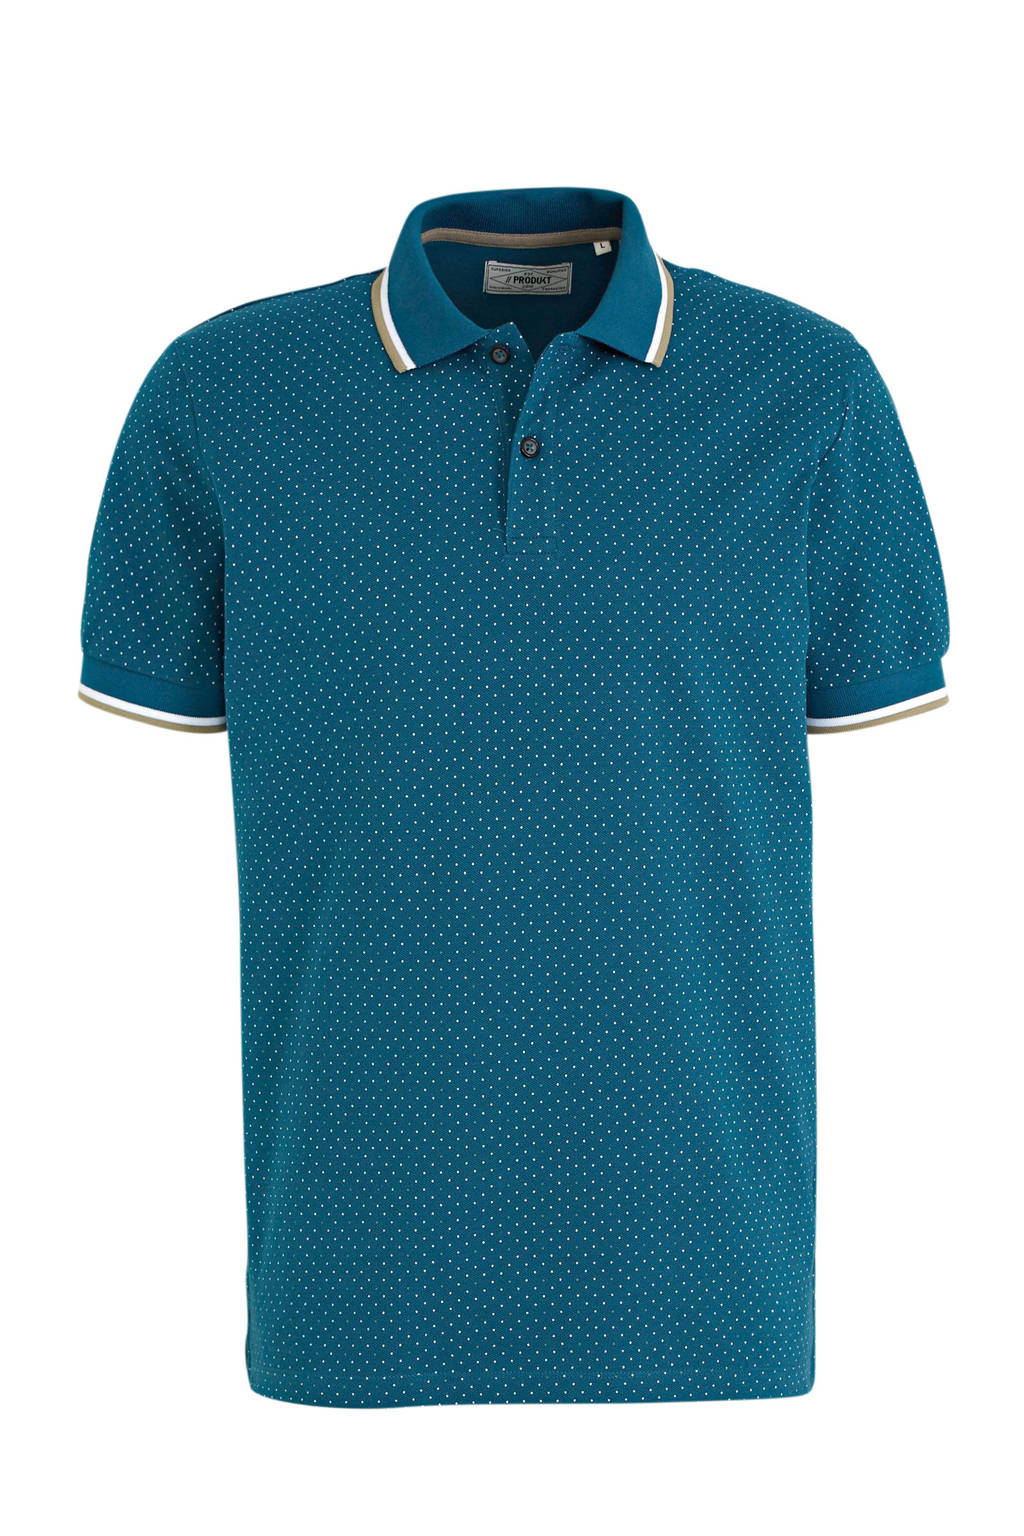 PRODUKT regular fit polo met stippen turquoise, Turquoise